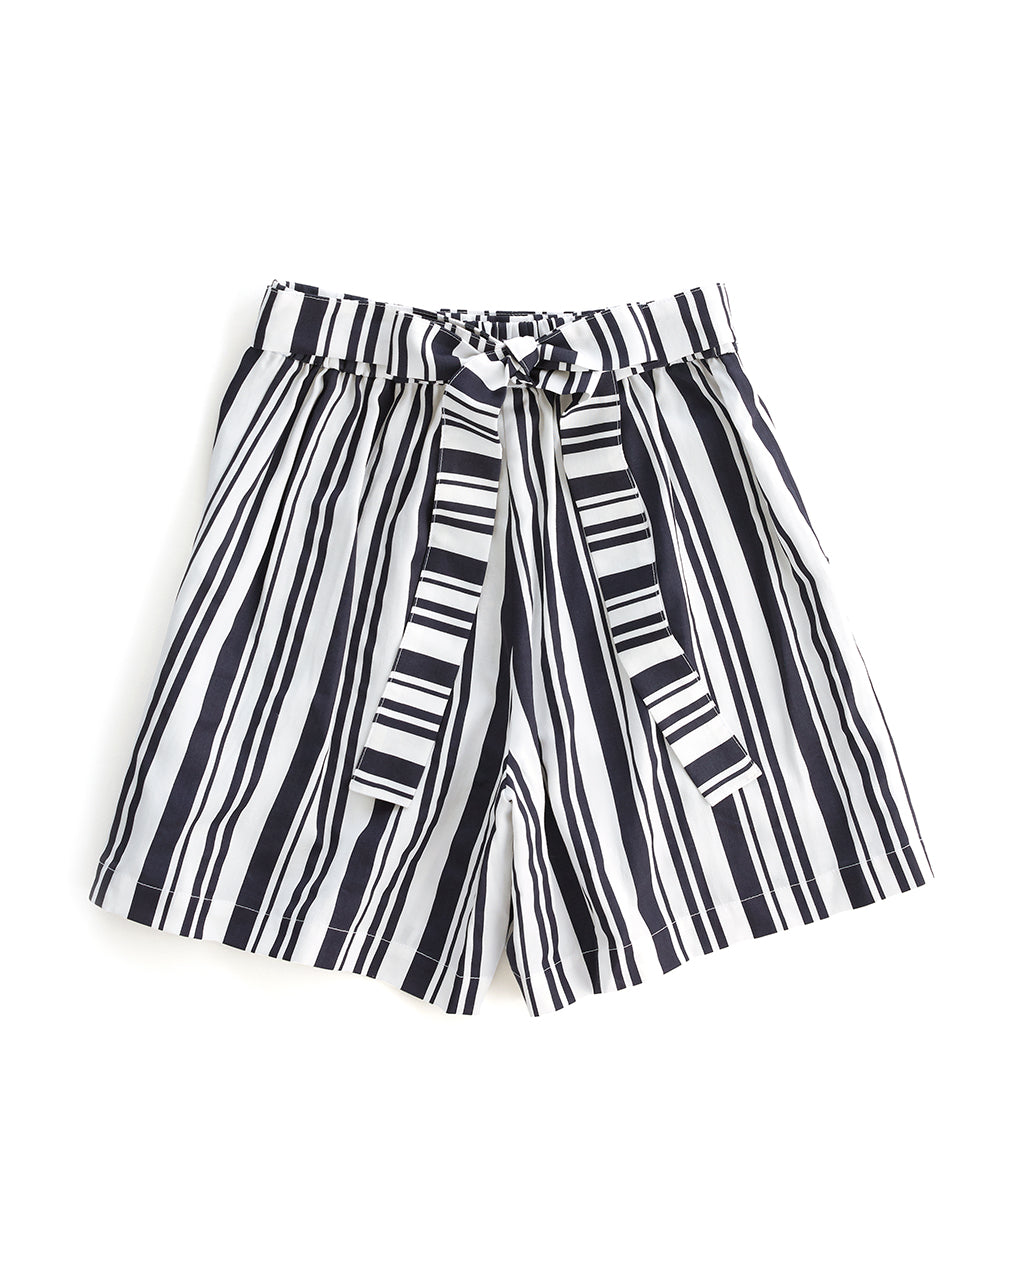 flat view of black and white striped shorts with a tie waist